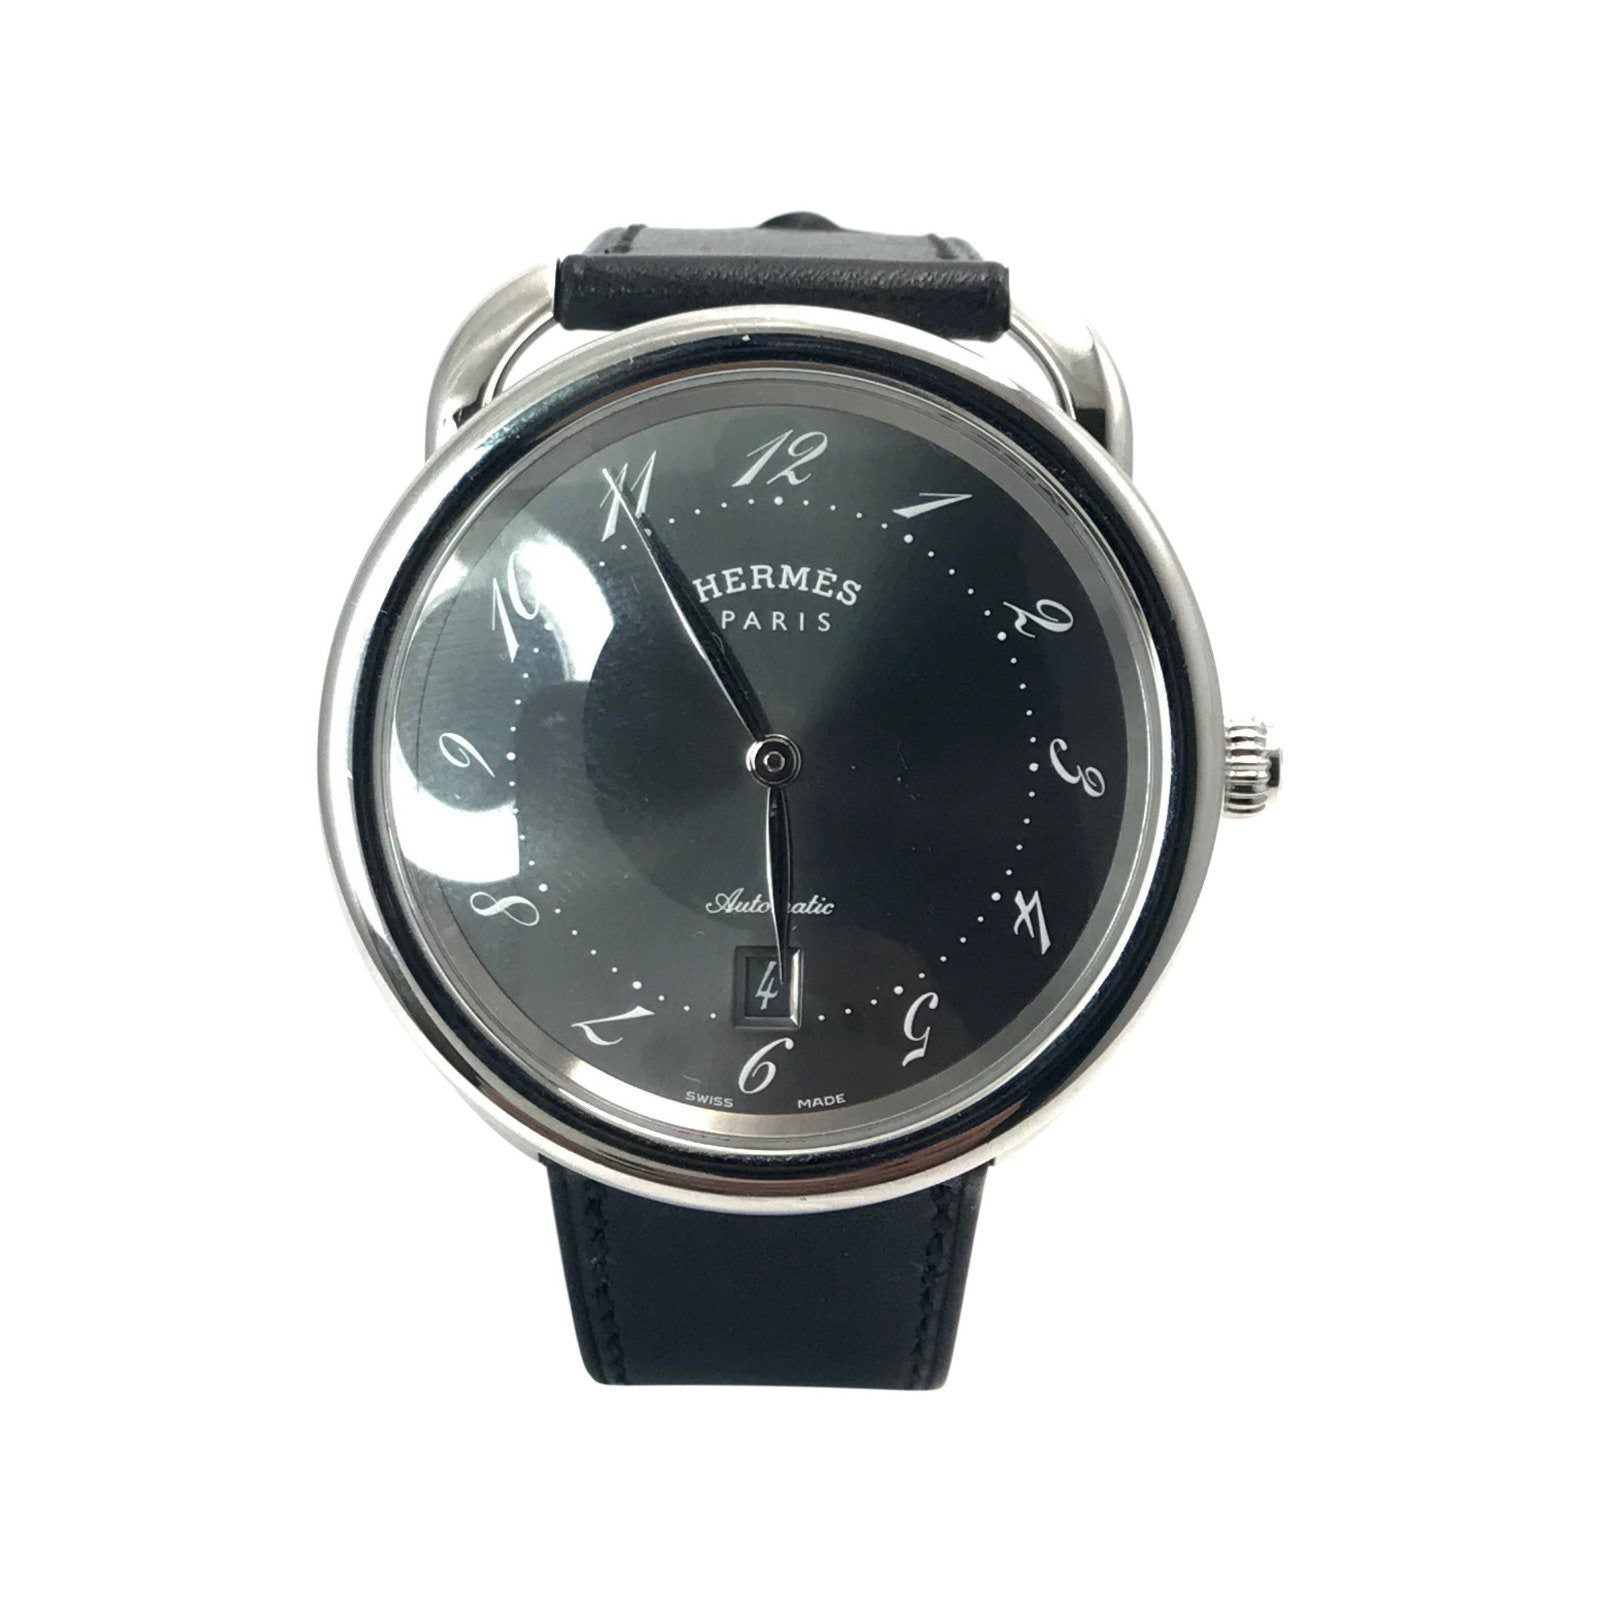 e4837fde8694f Hermes Arceau Automatic Wrist Watch In Stainless Steel - Watches ...